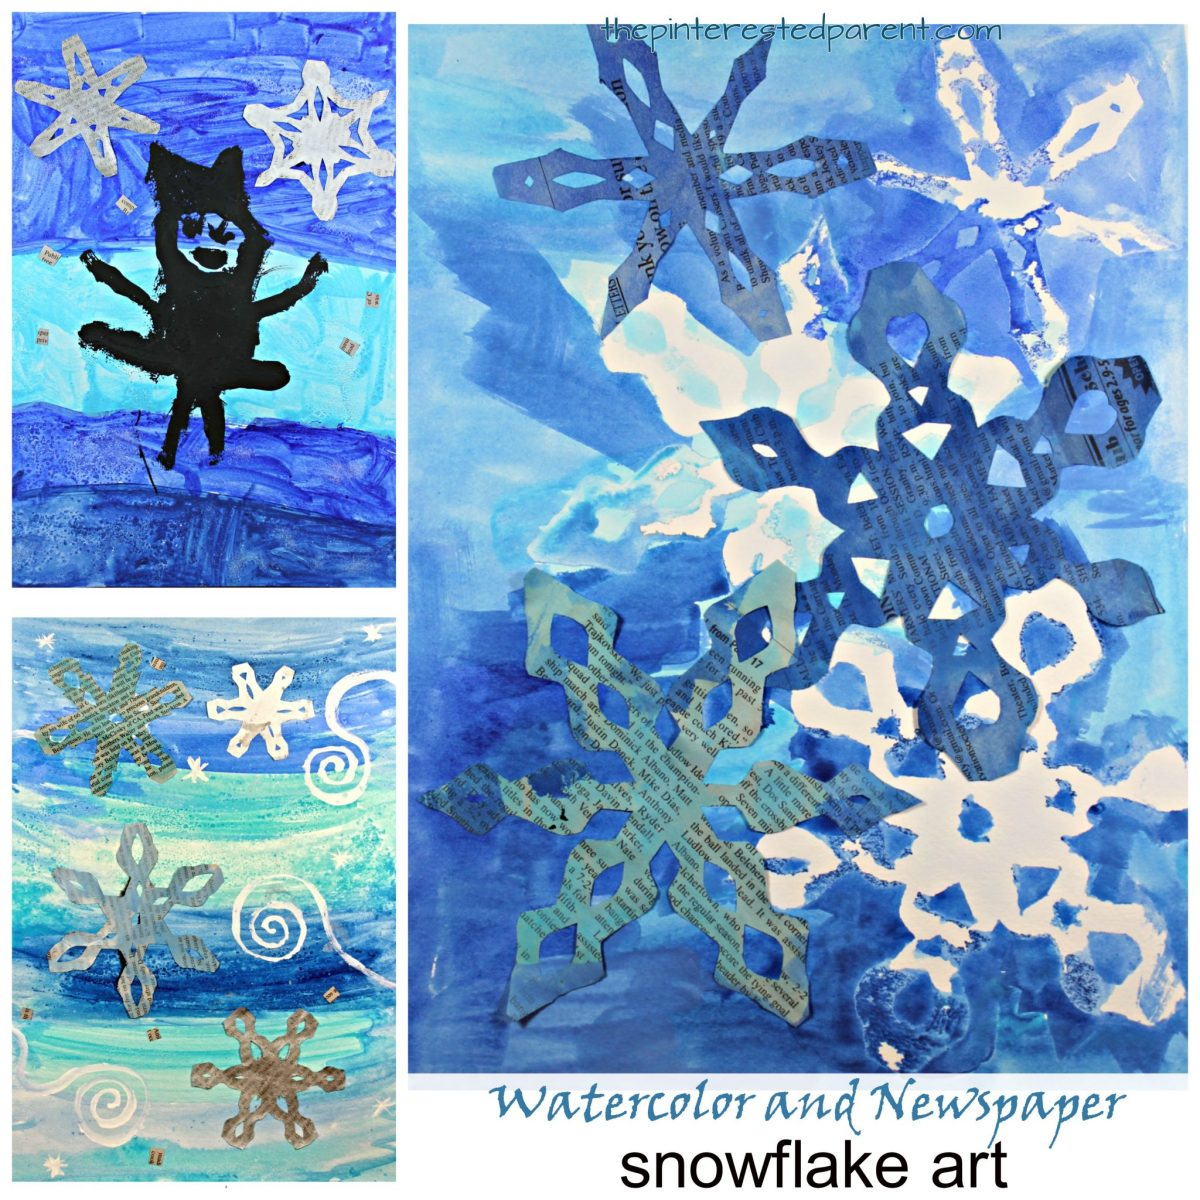 Newspaper and Watercolor Snowflake Art